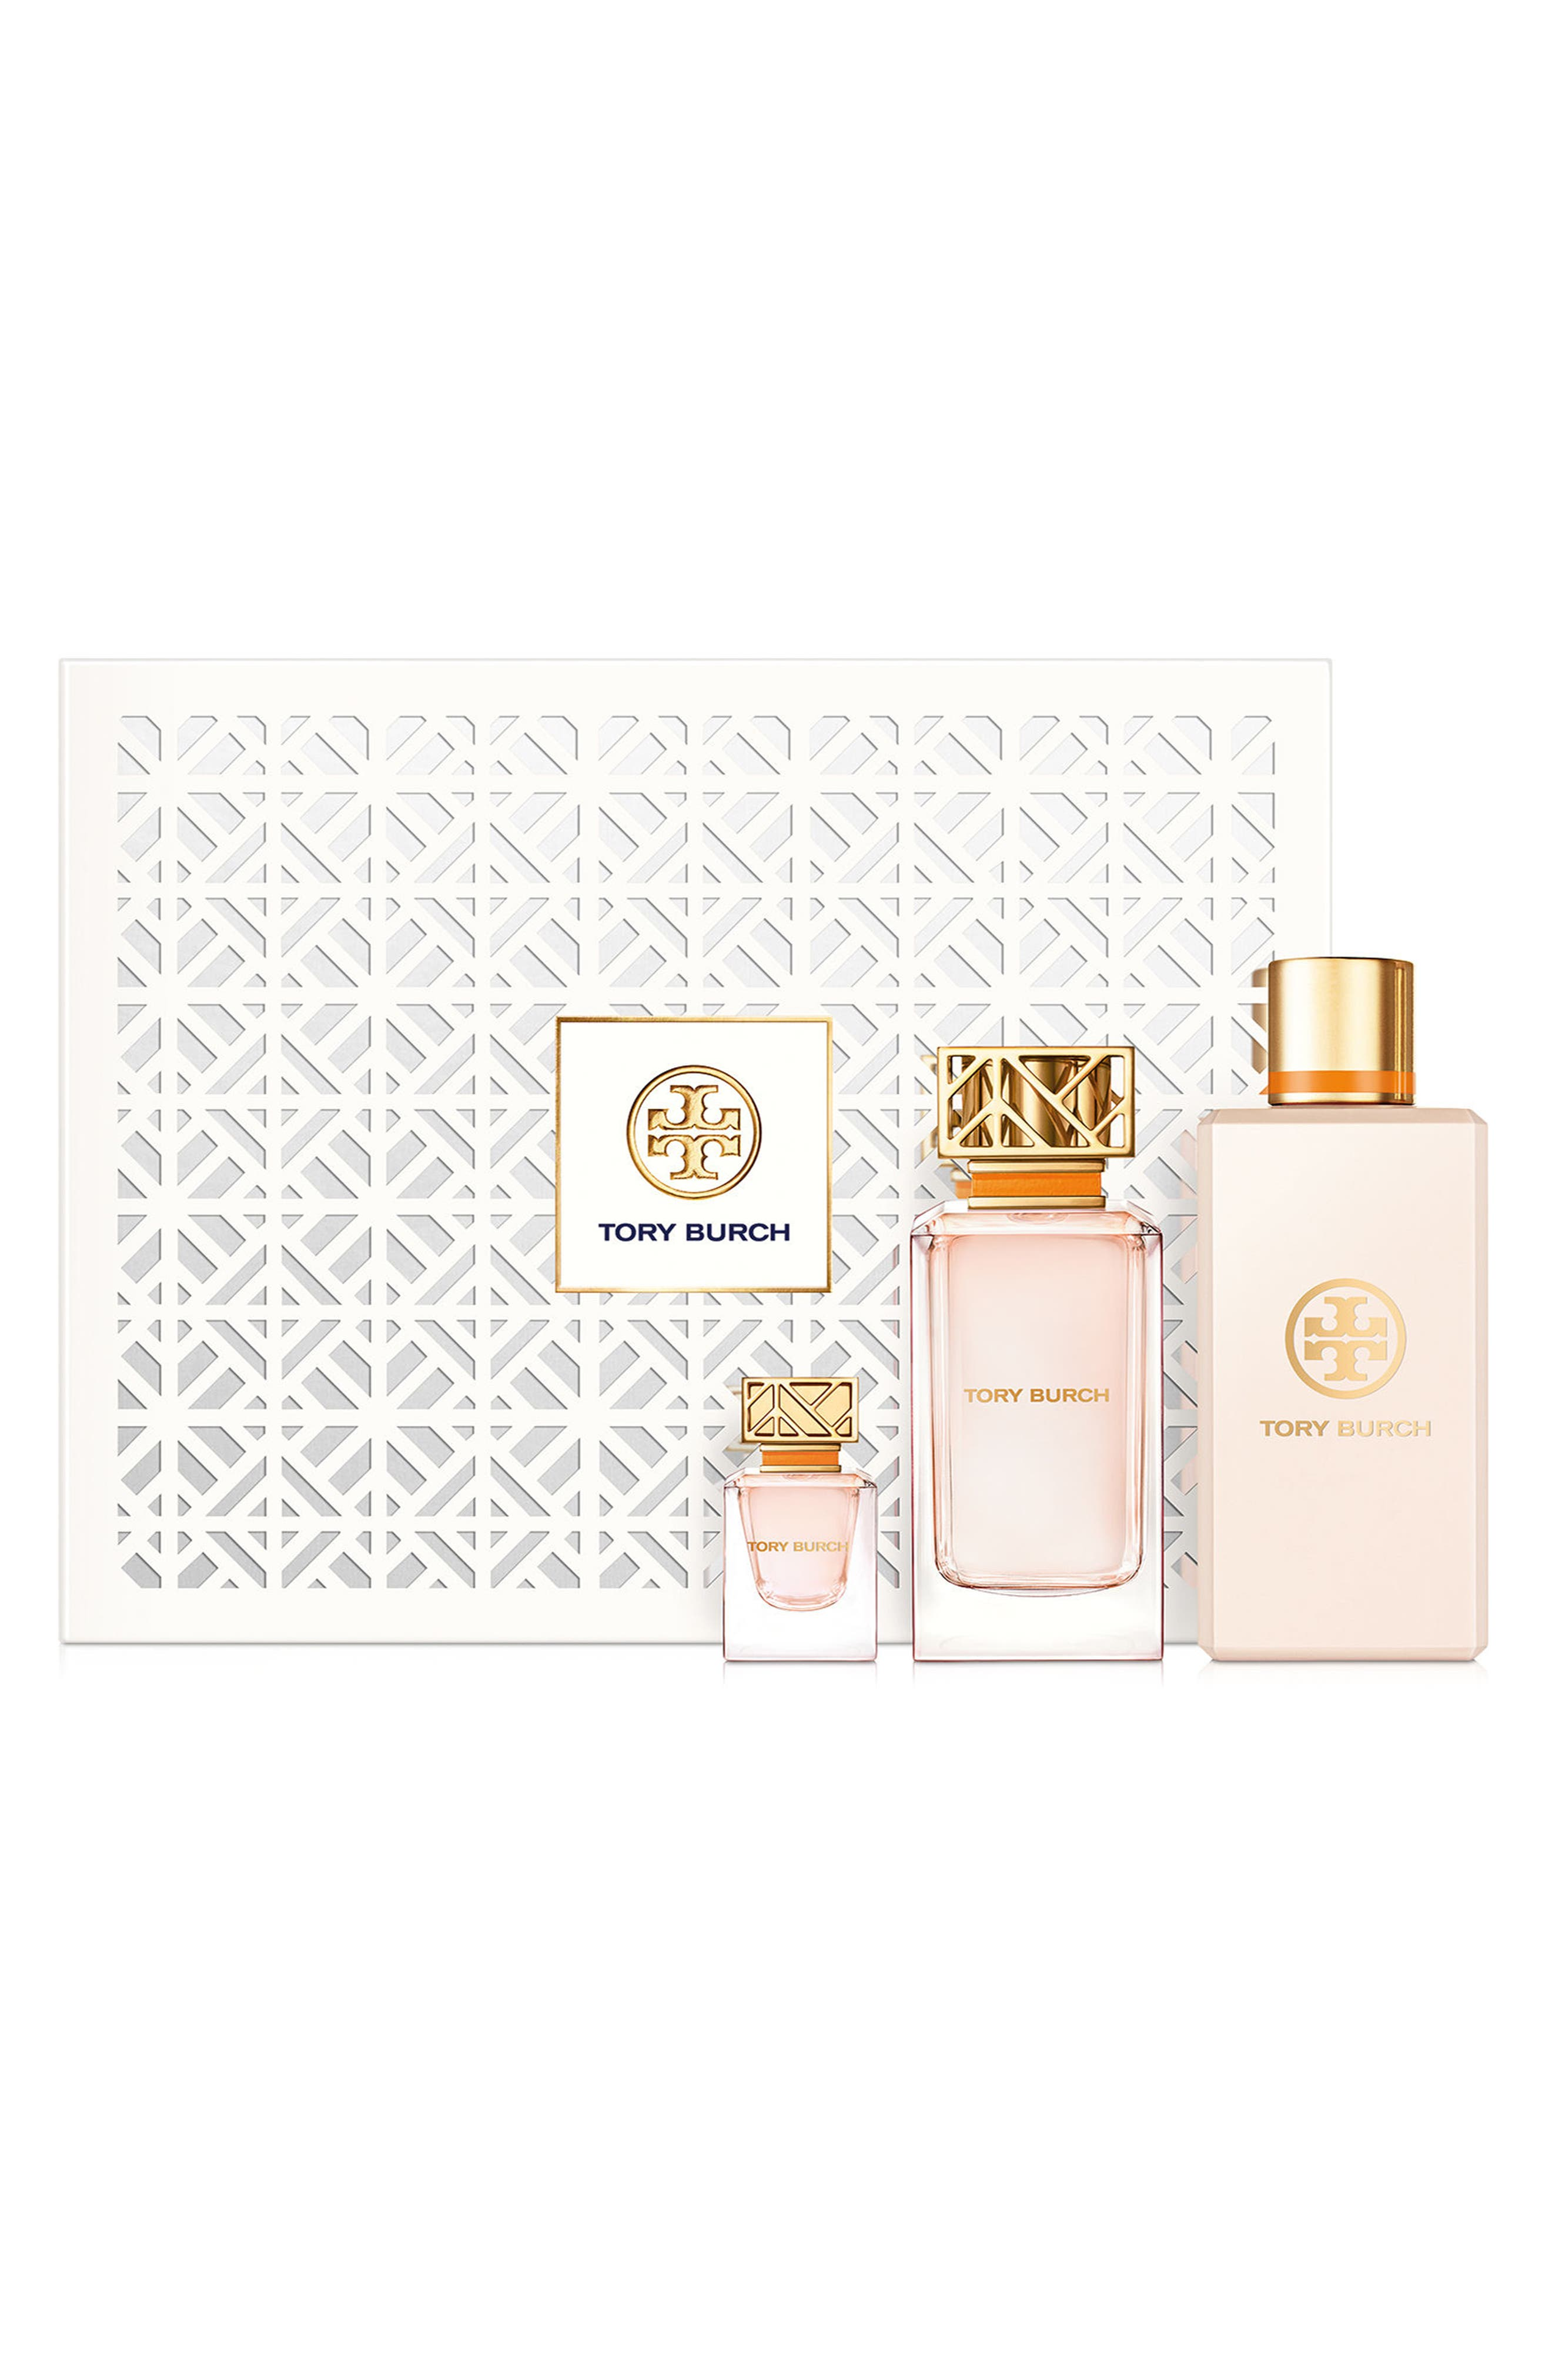 Tory Burch Signature Deluxe Set ($191 Value)